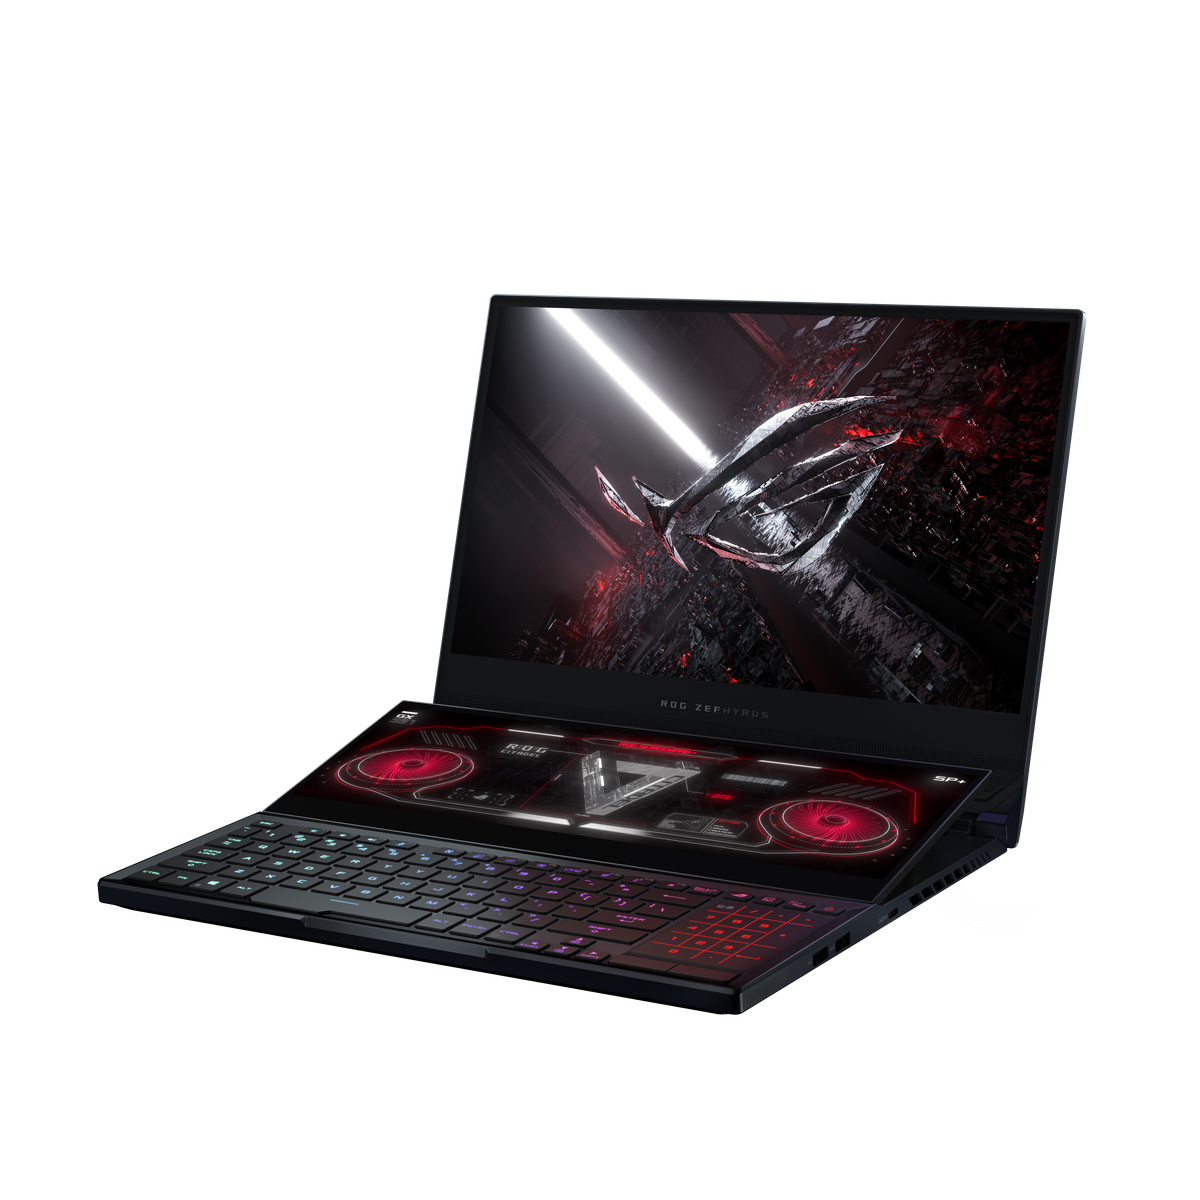 The Asus Zephyrus Duo 15 SE angled to the left. The primary screen displays the ROG logo. The ScreenPad Plus displays Asus's home screen. The RGB keyboard is illuminated. The touchpad displays an LED numpad.